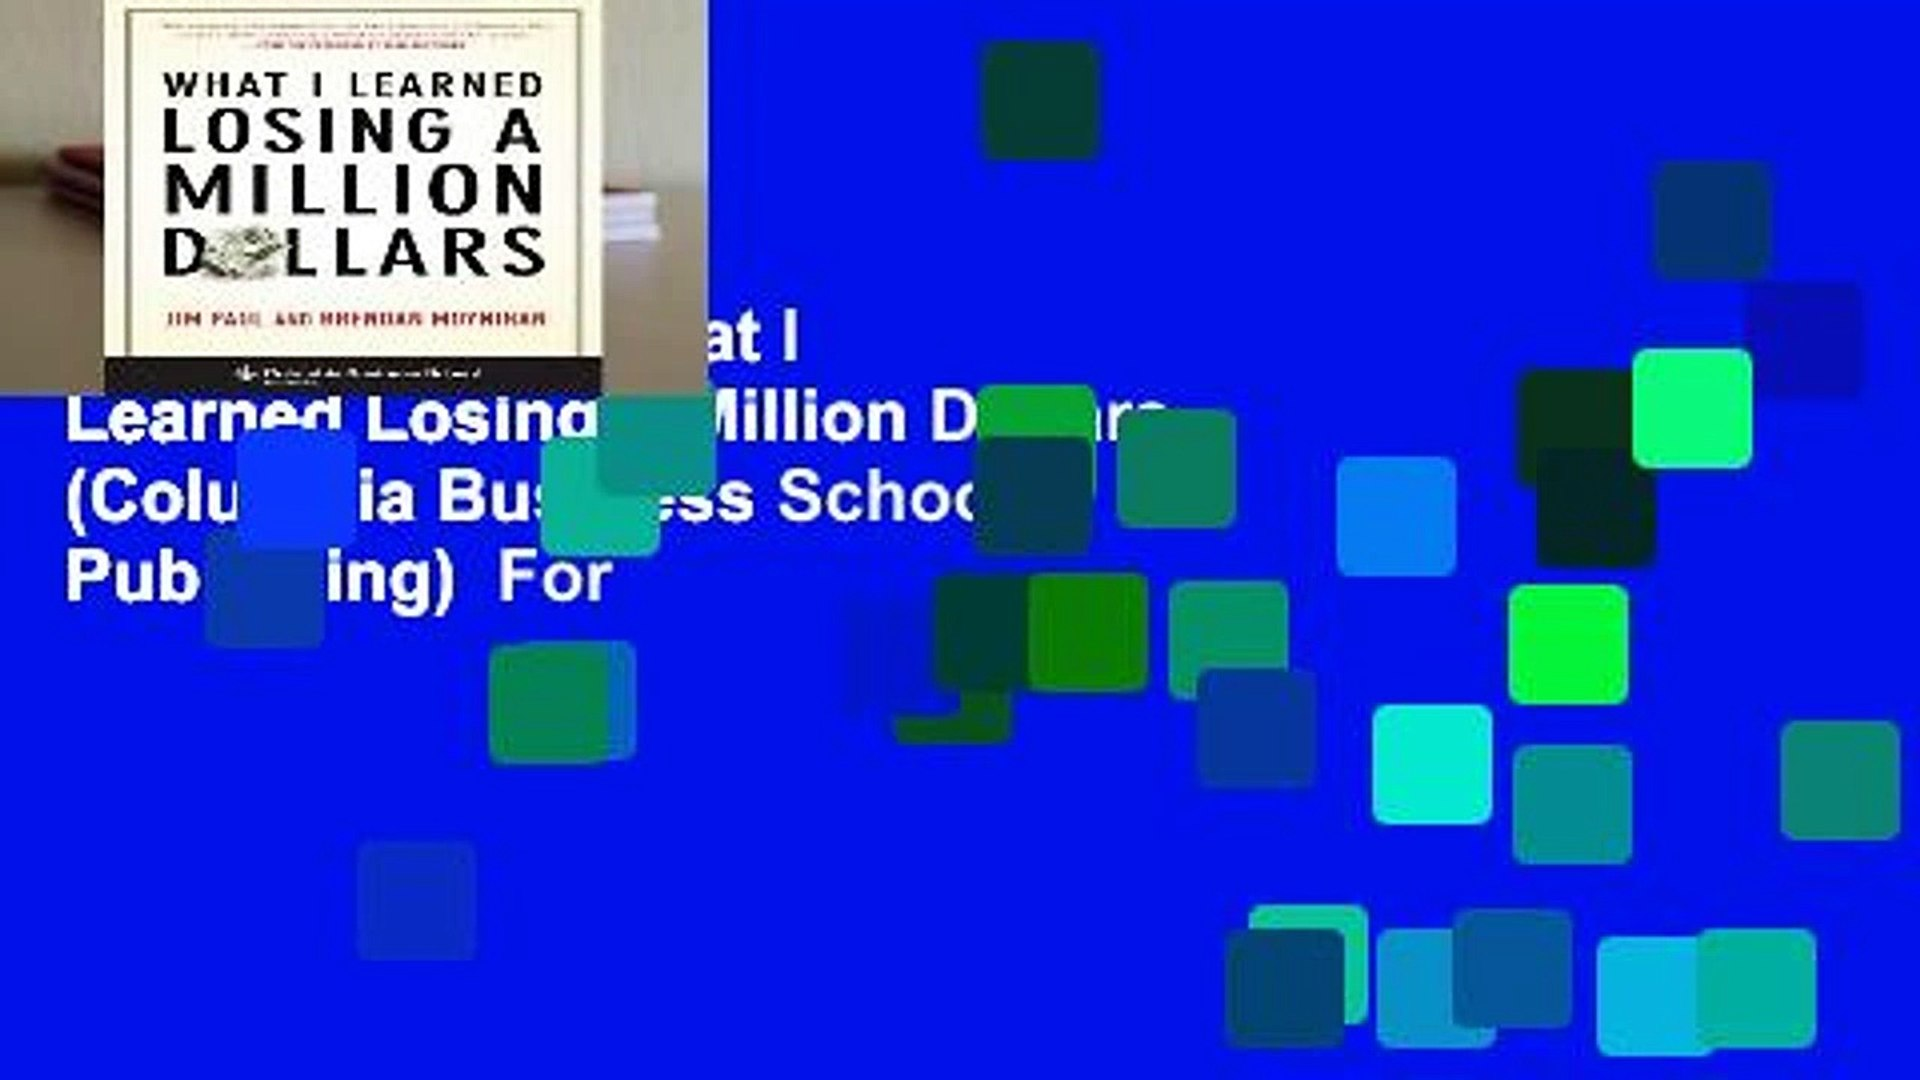 New Releases What I Learned Losing a Million Dollars (Columbia Business School Publishing)  For